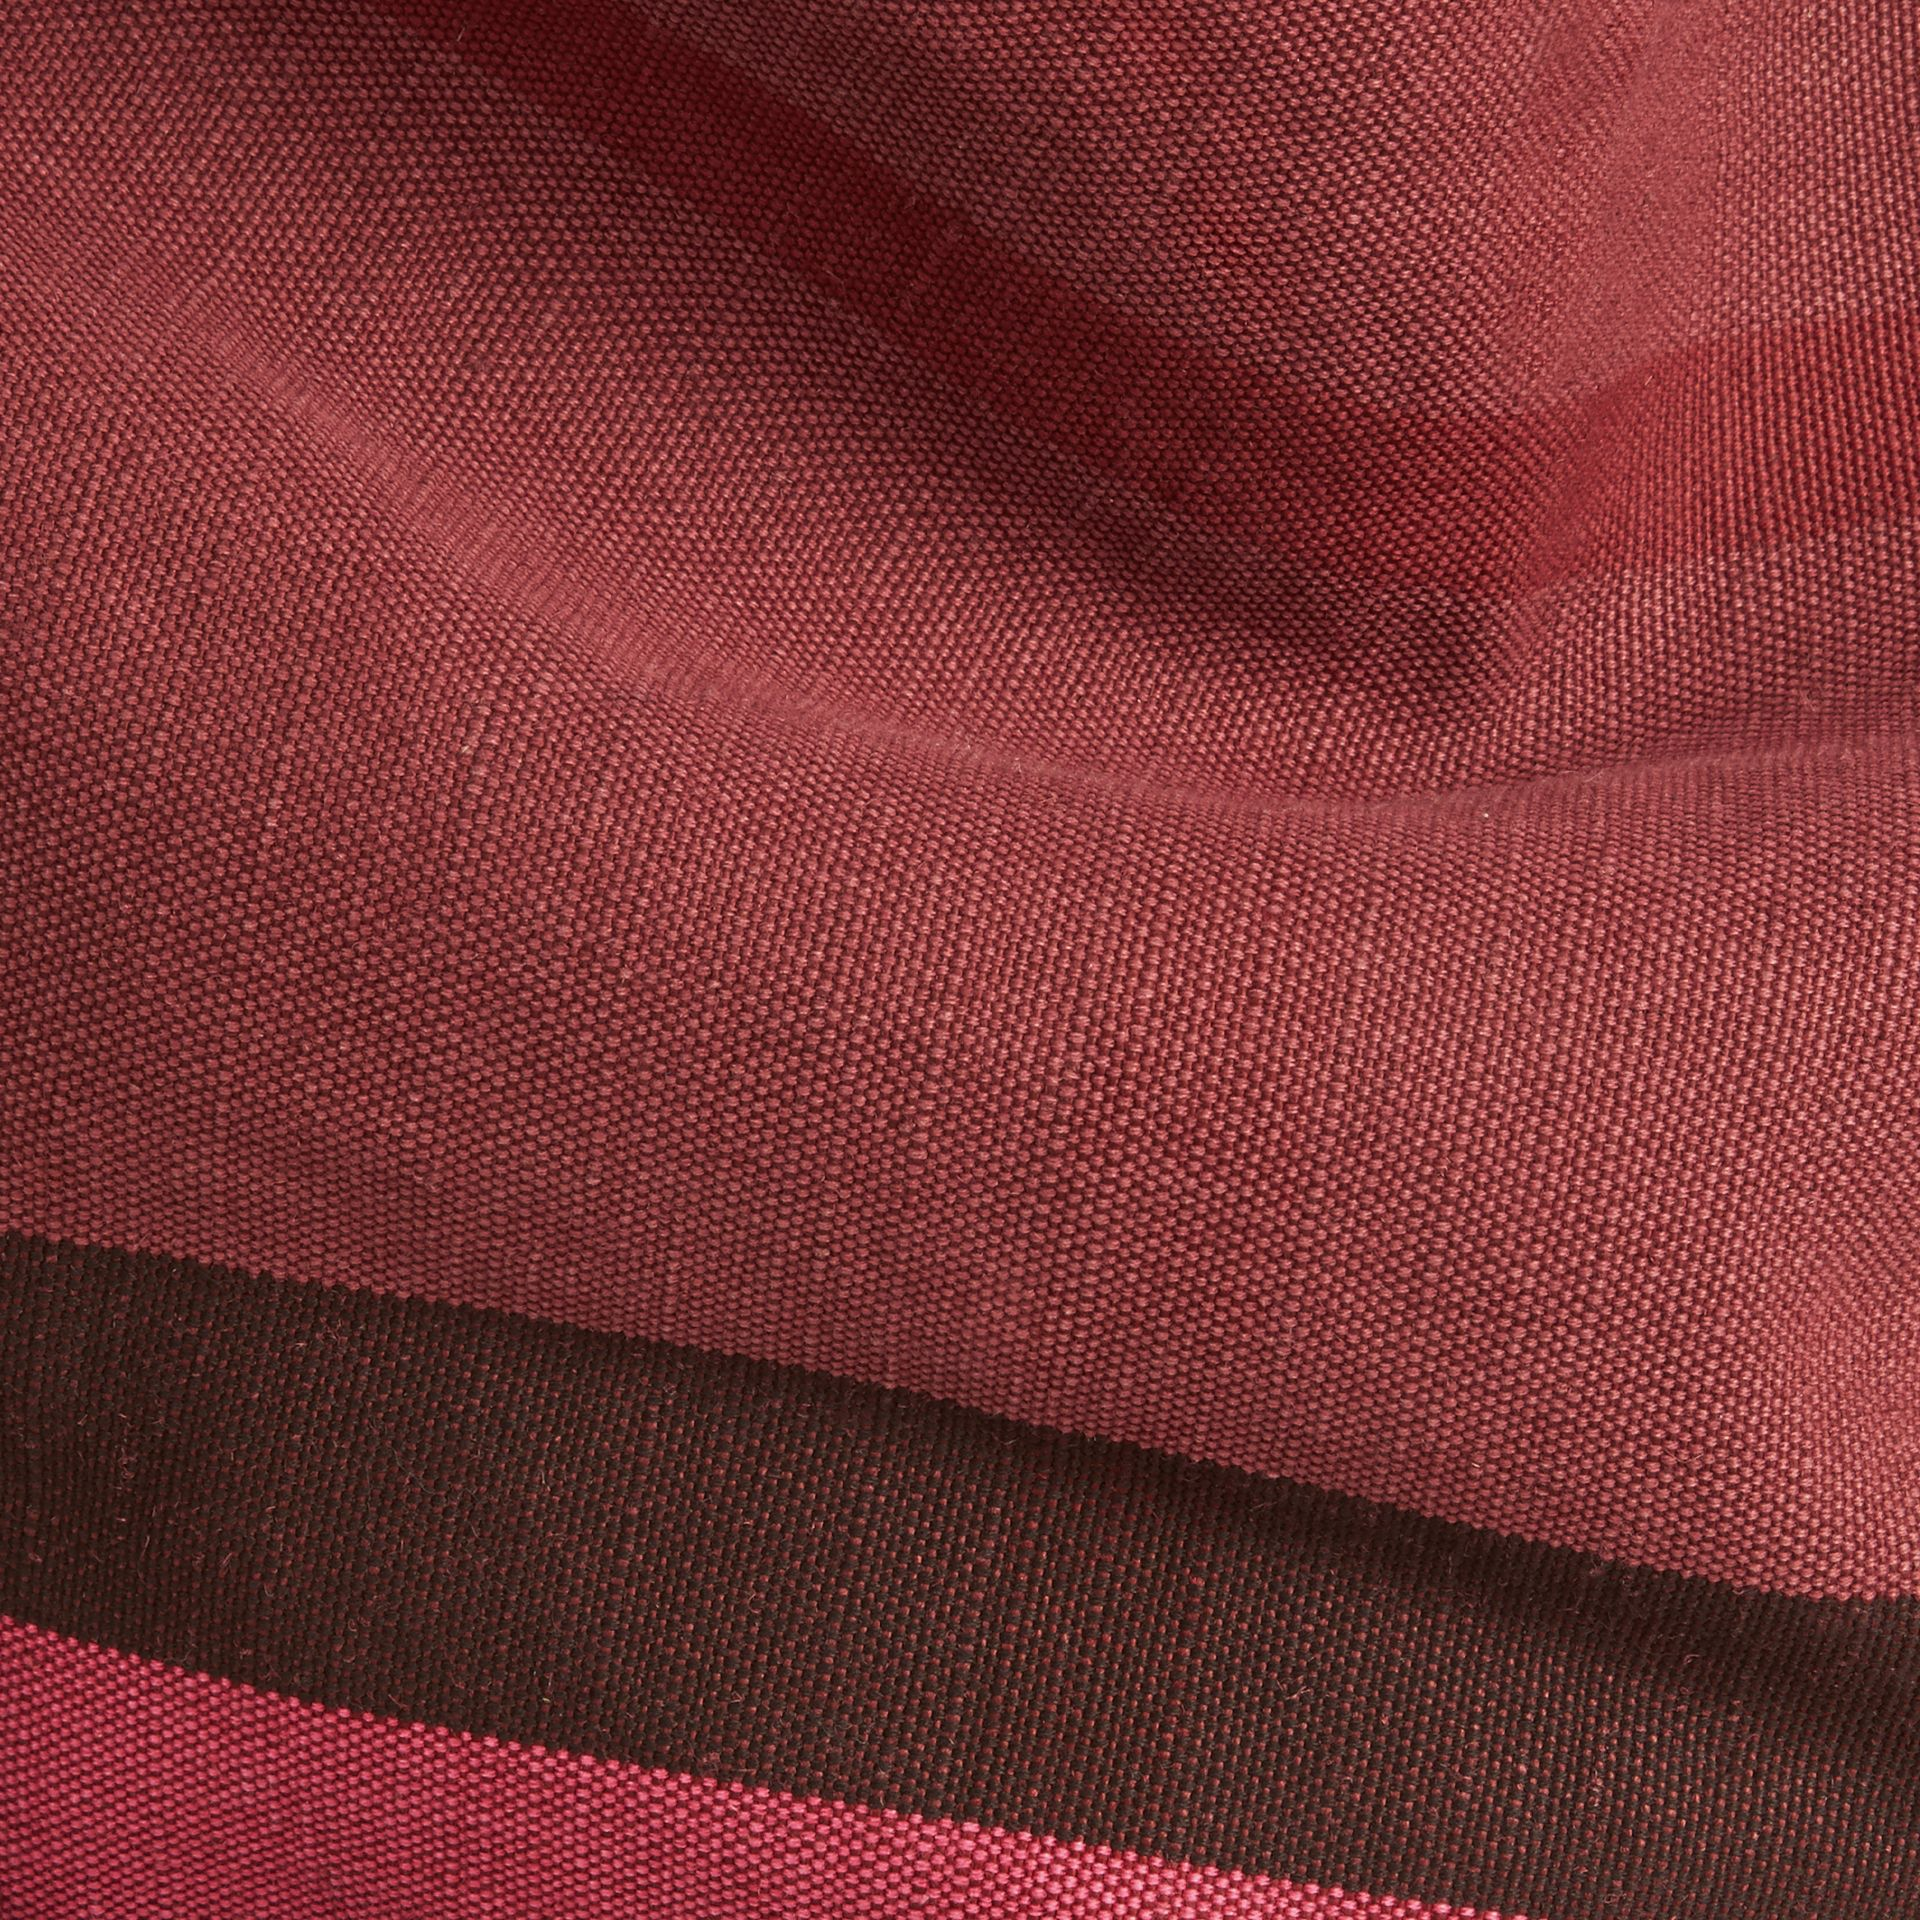 Plum The Medium Ashby in Overdyed Canvas Check and Leather Plum - gallery image 2